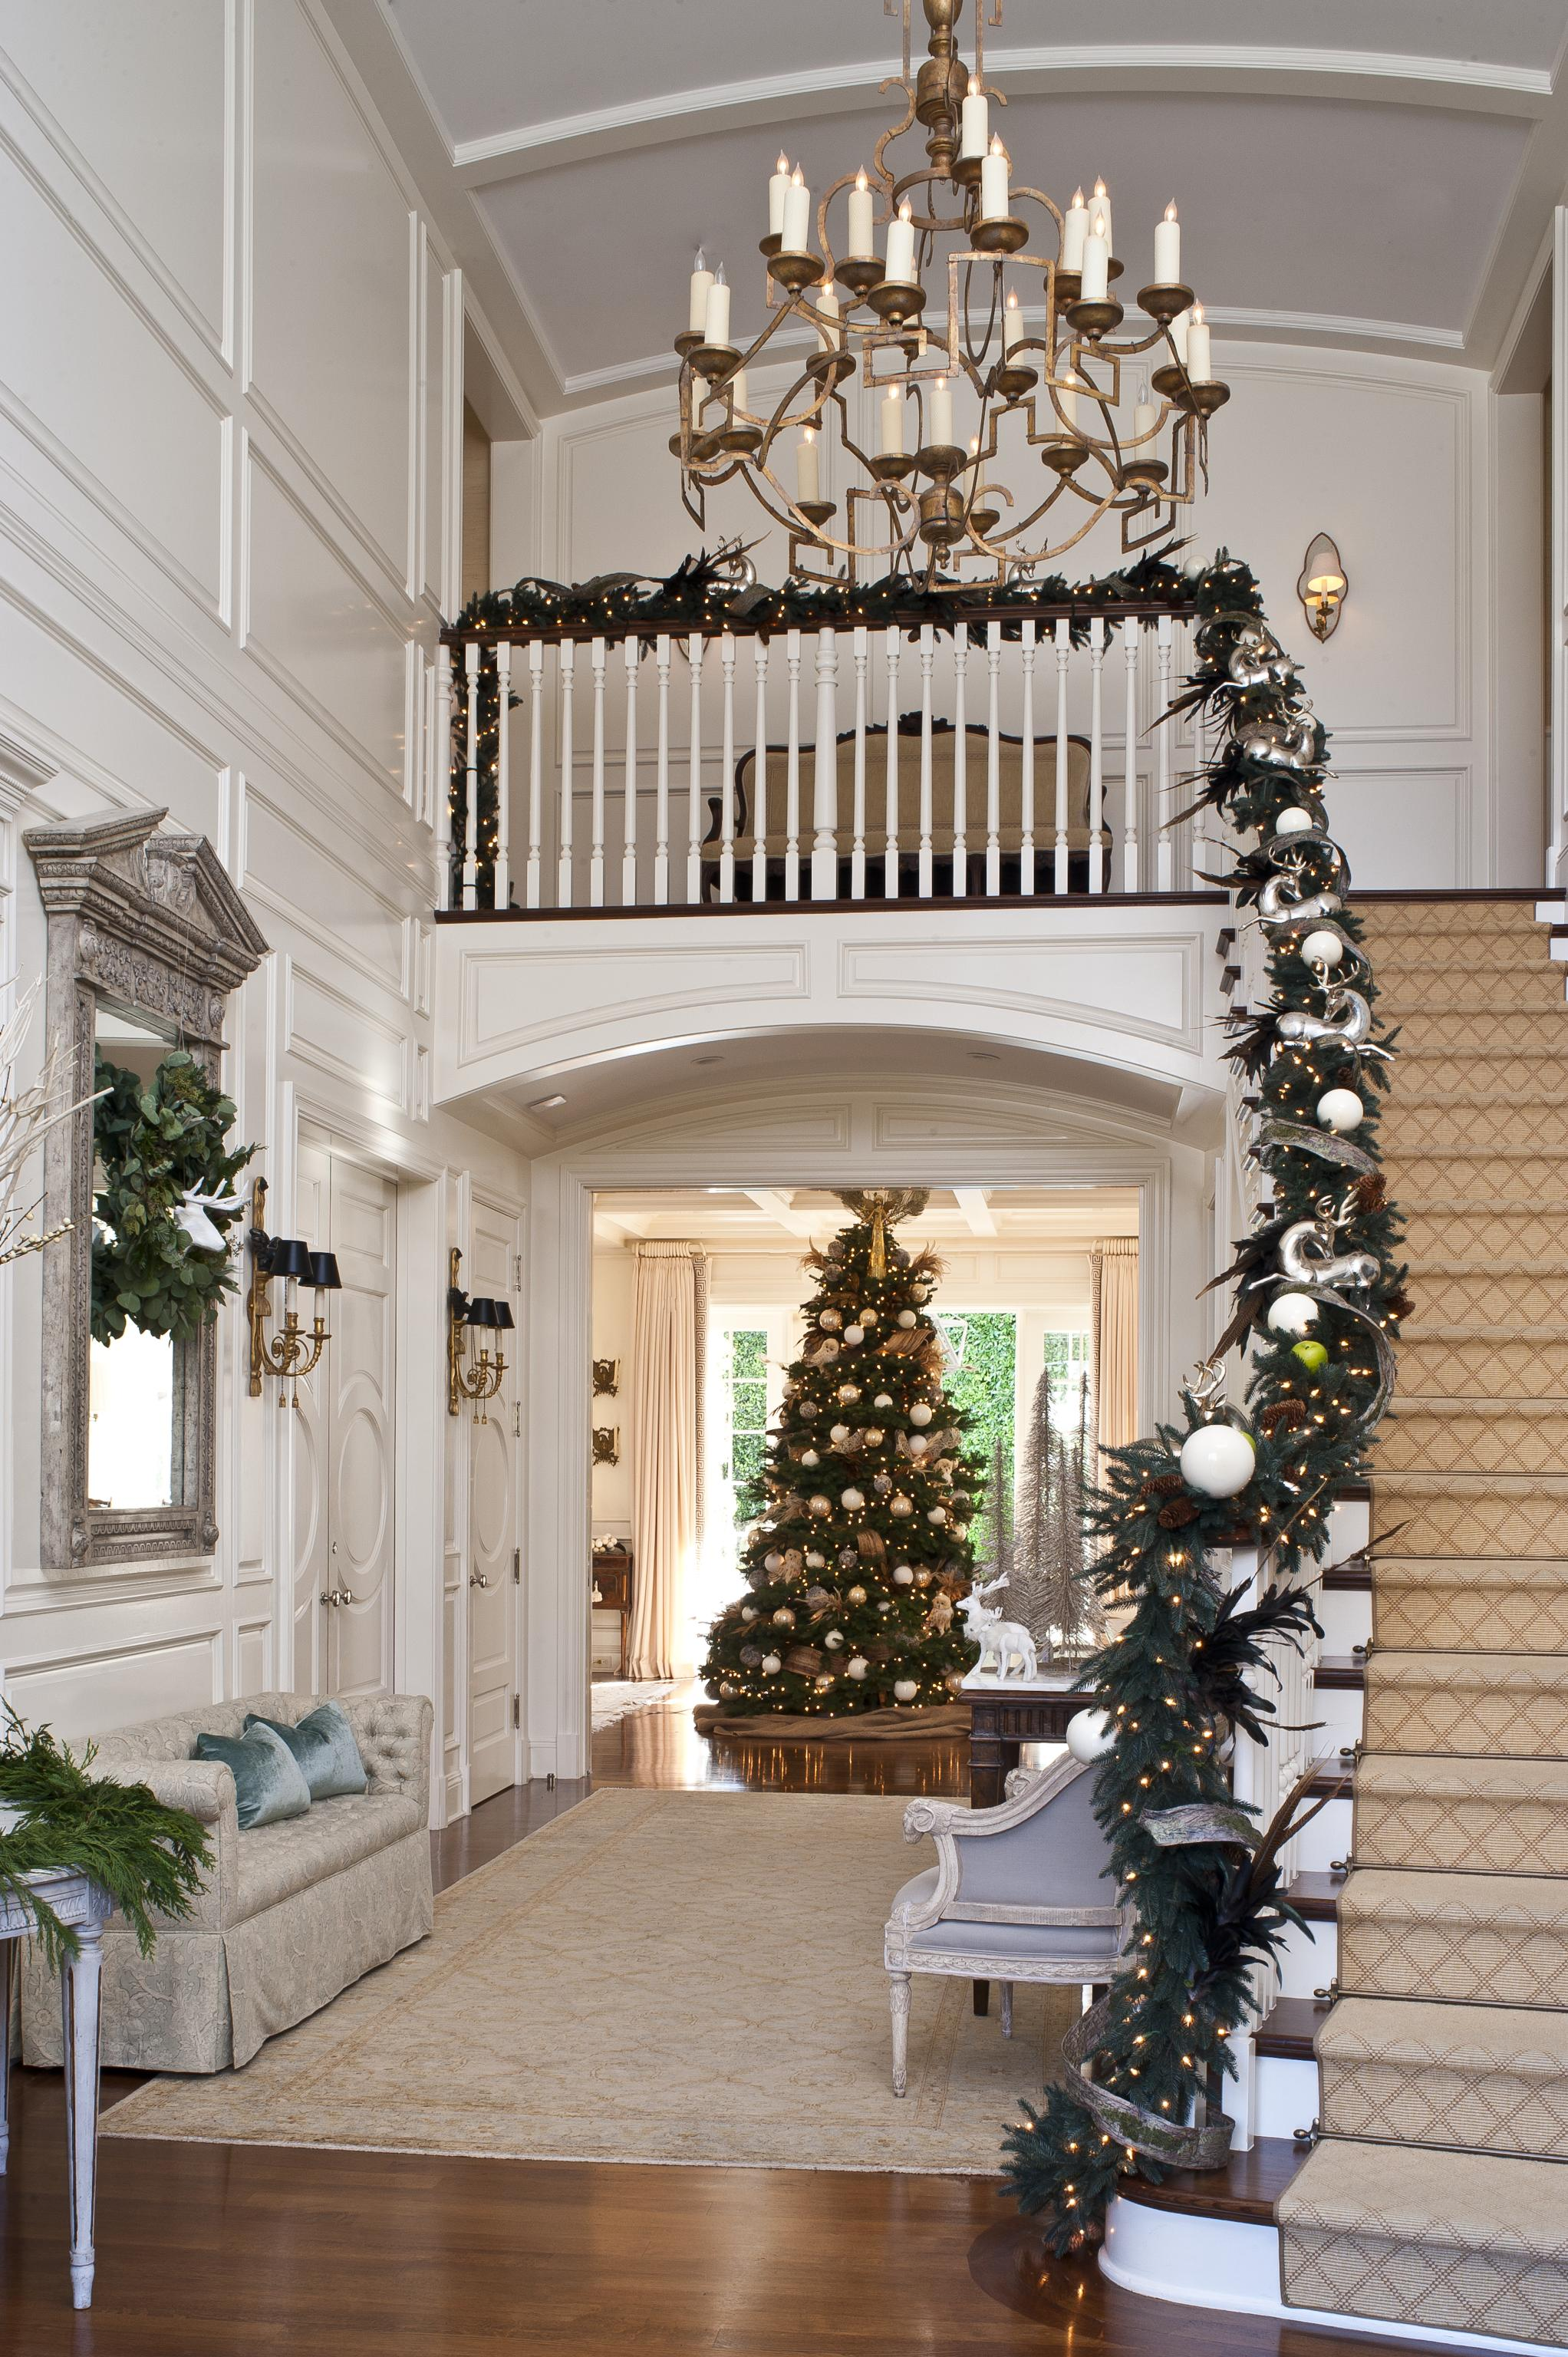 source - Decorating Banisters For Christmas With Ribbon